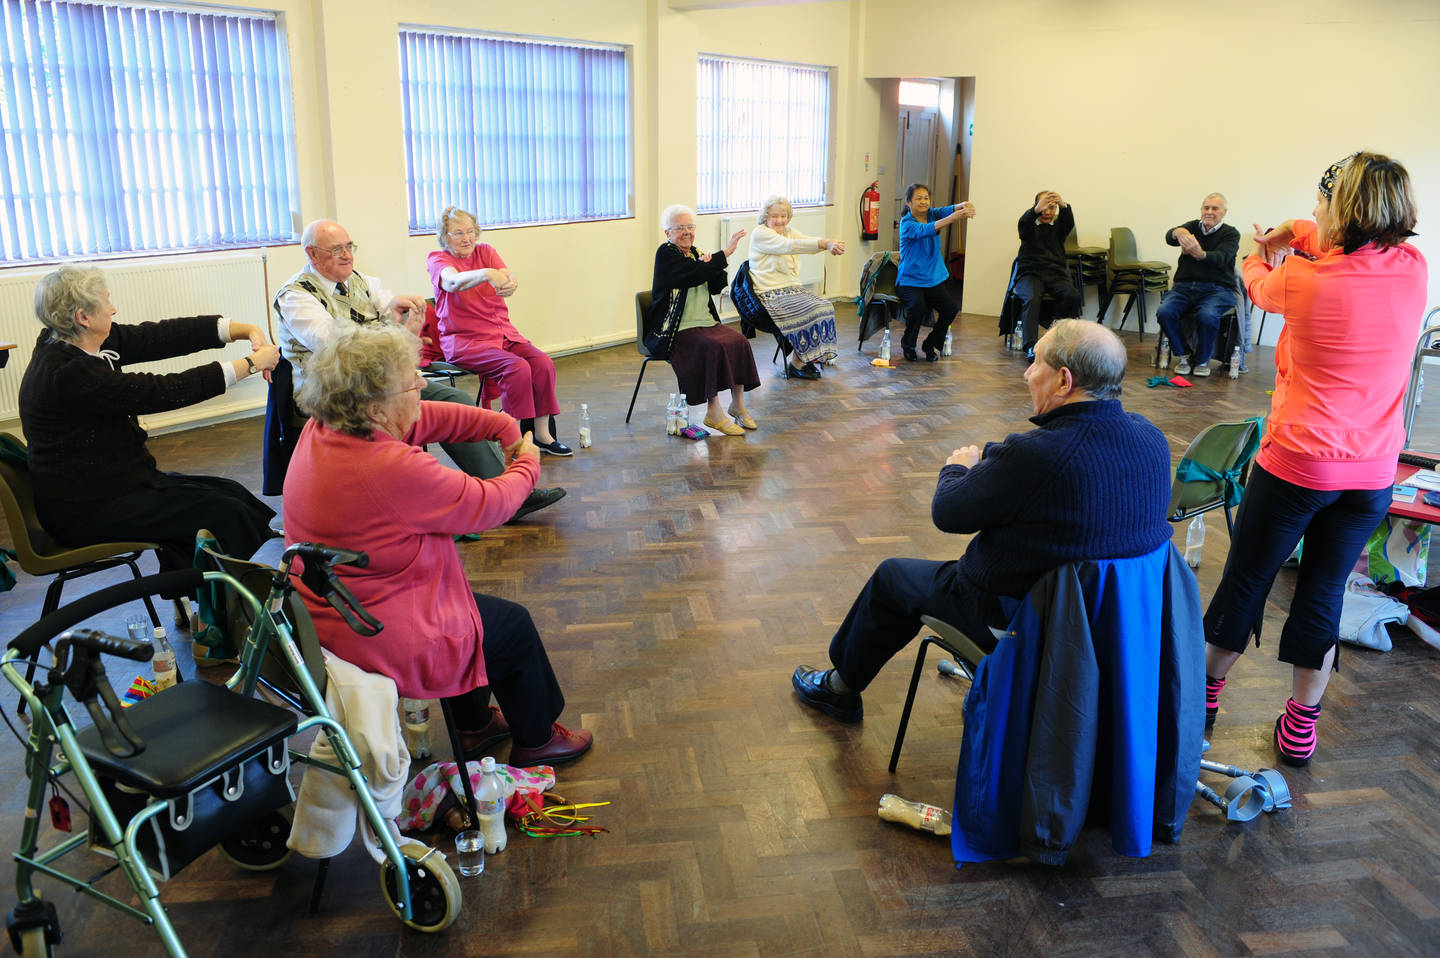 Older people taking part in an exercise class